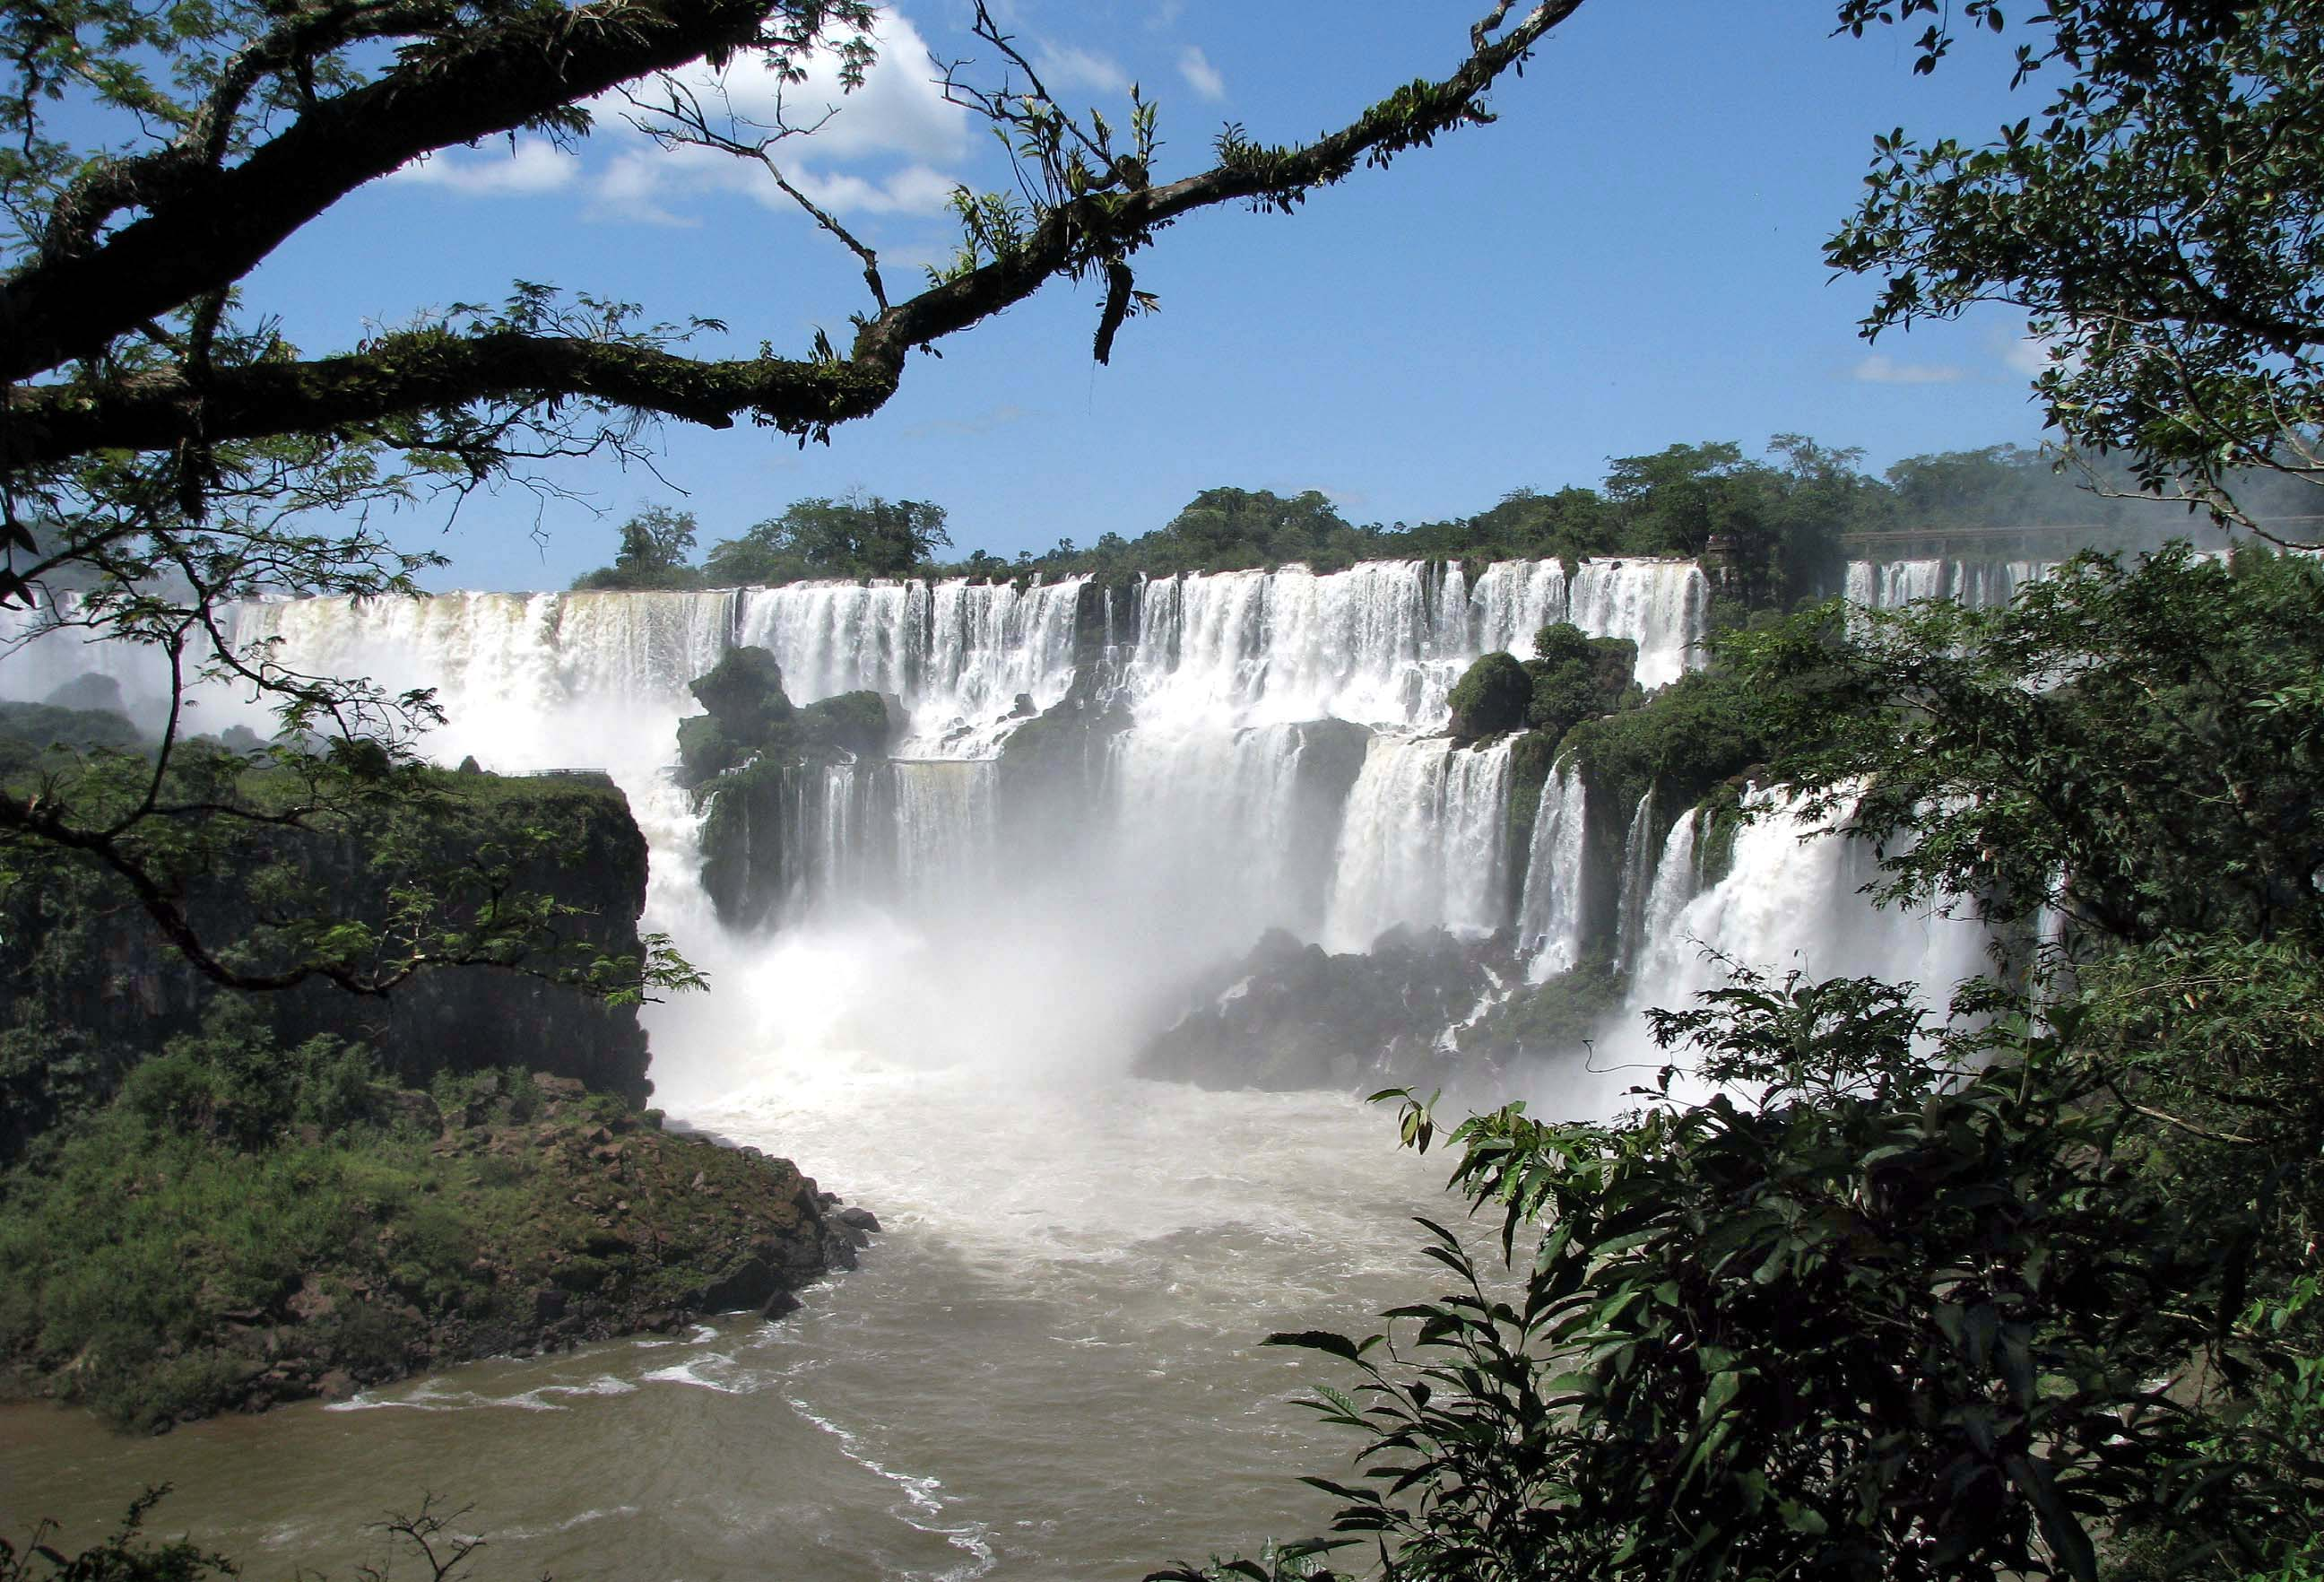 how deep is the main waterfall at parque nacional iguazu